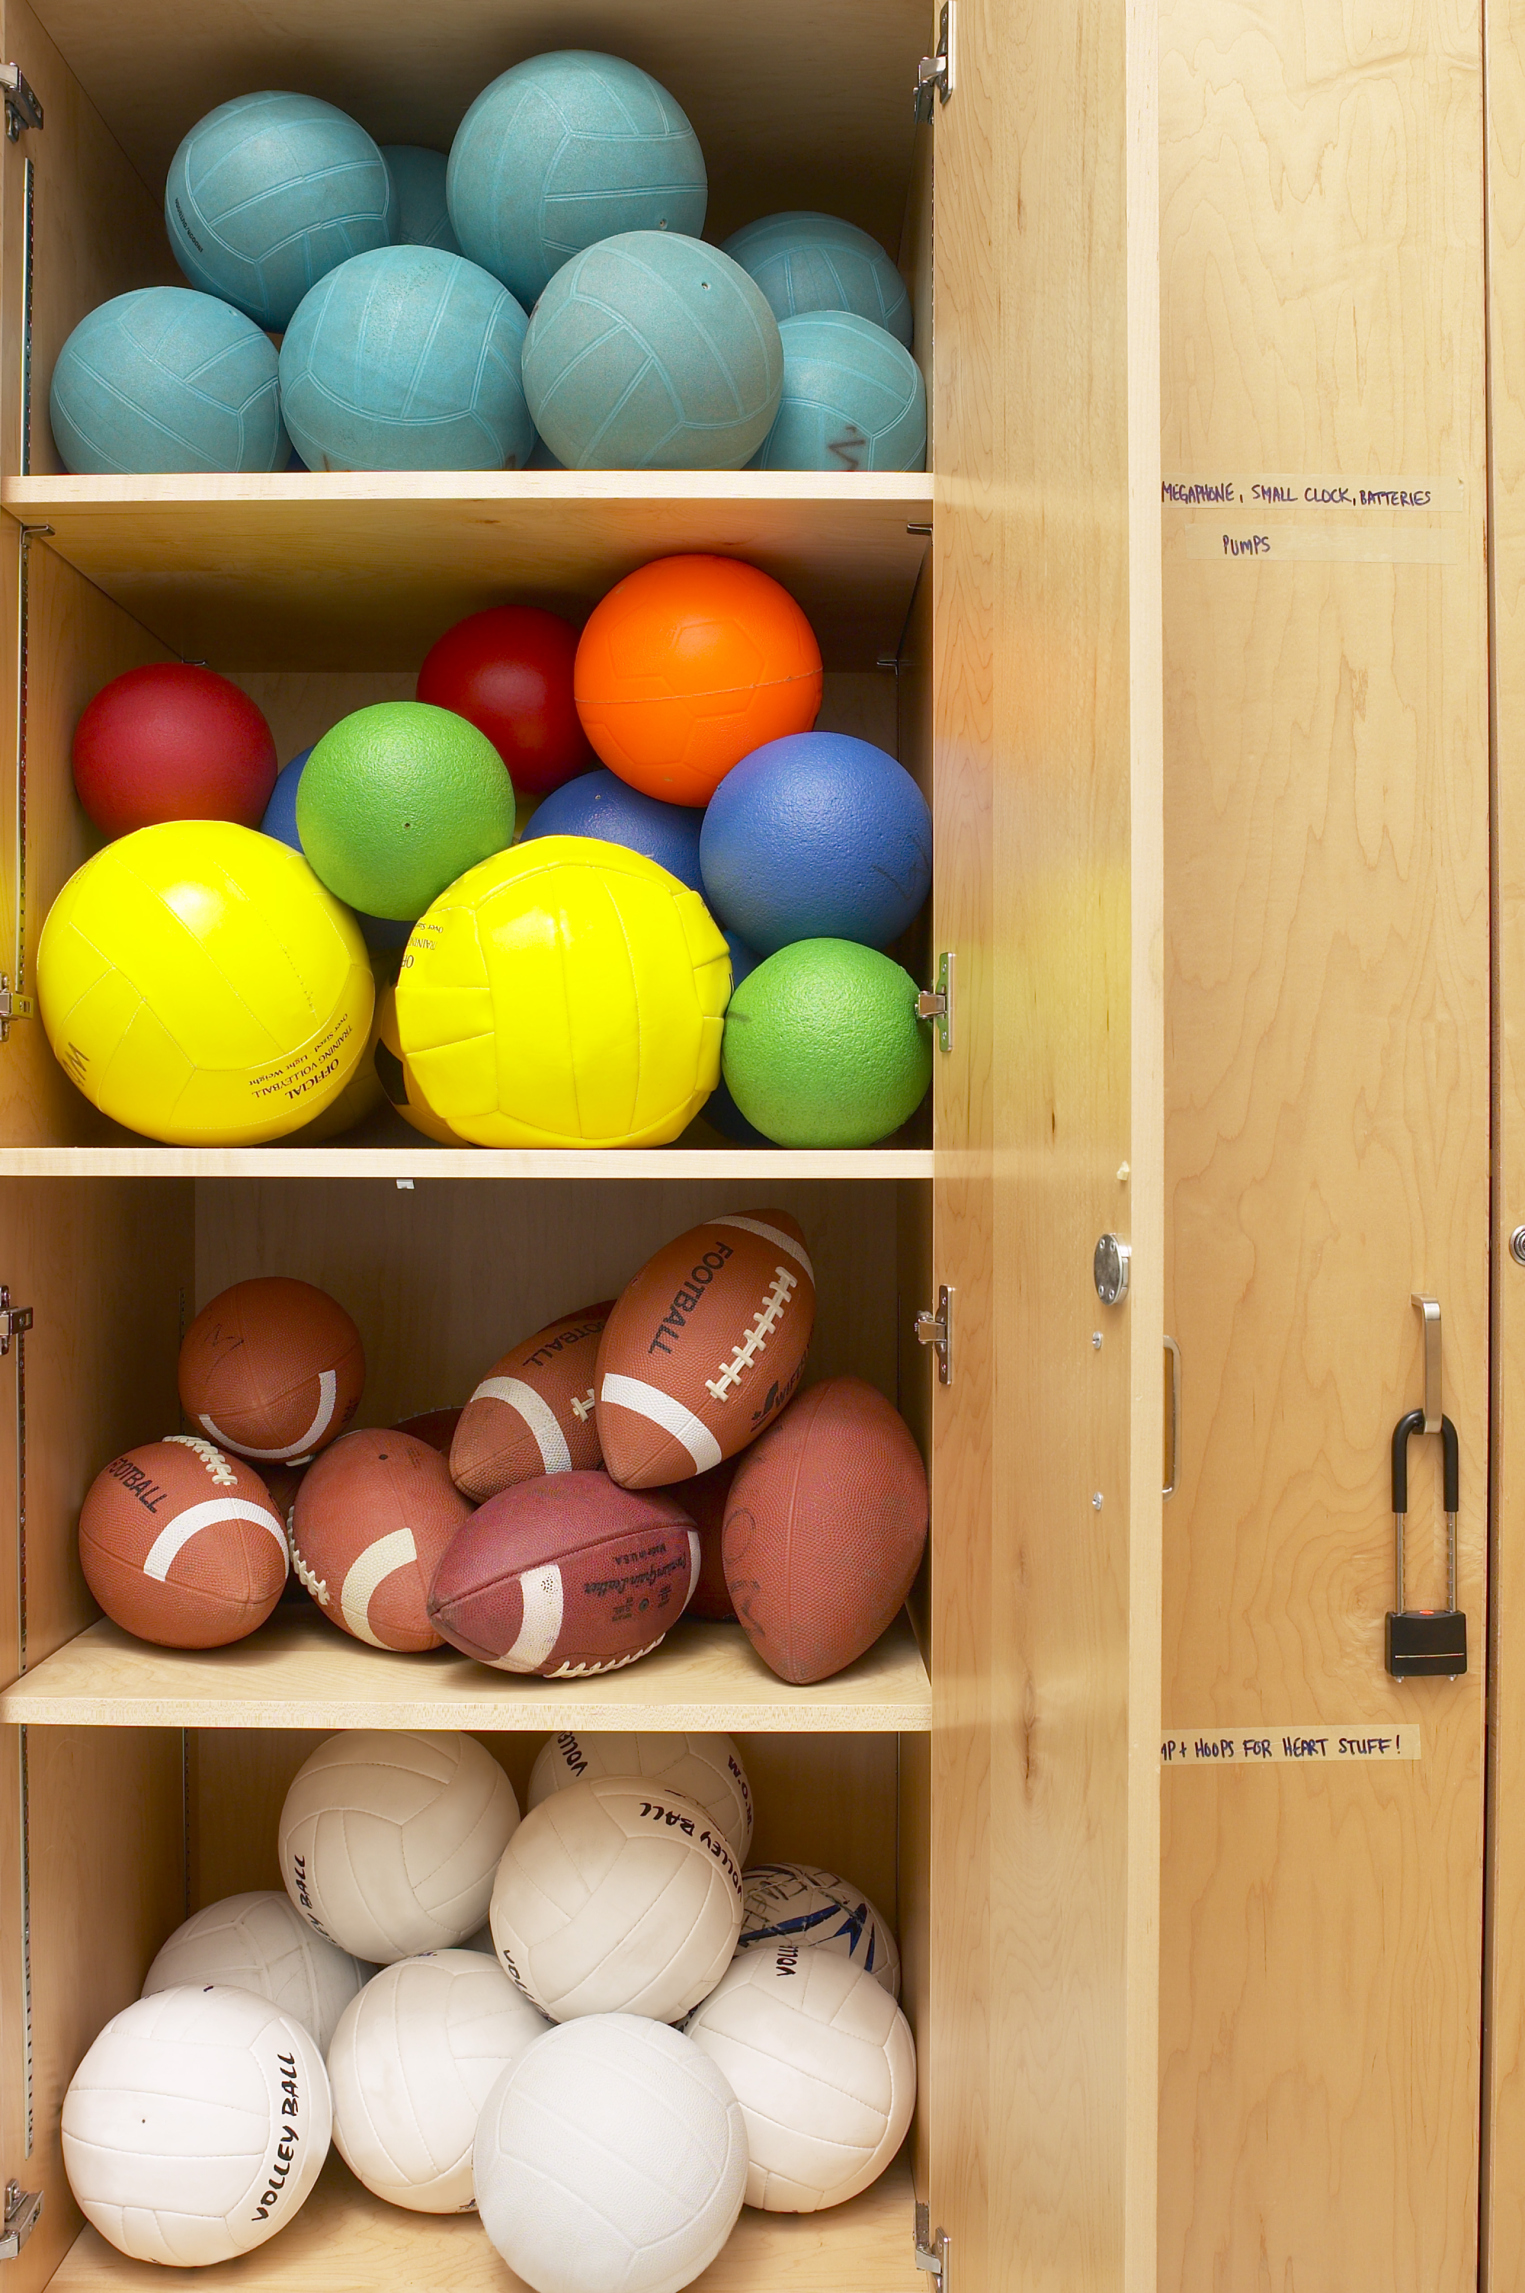 Should students have to wear physical education uniforms in school